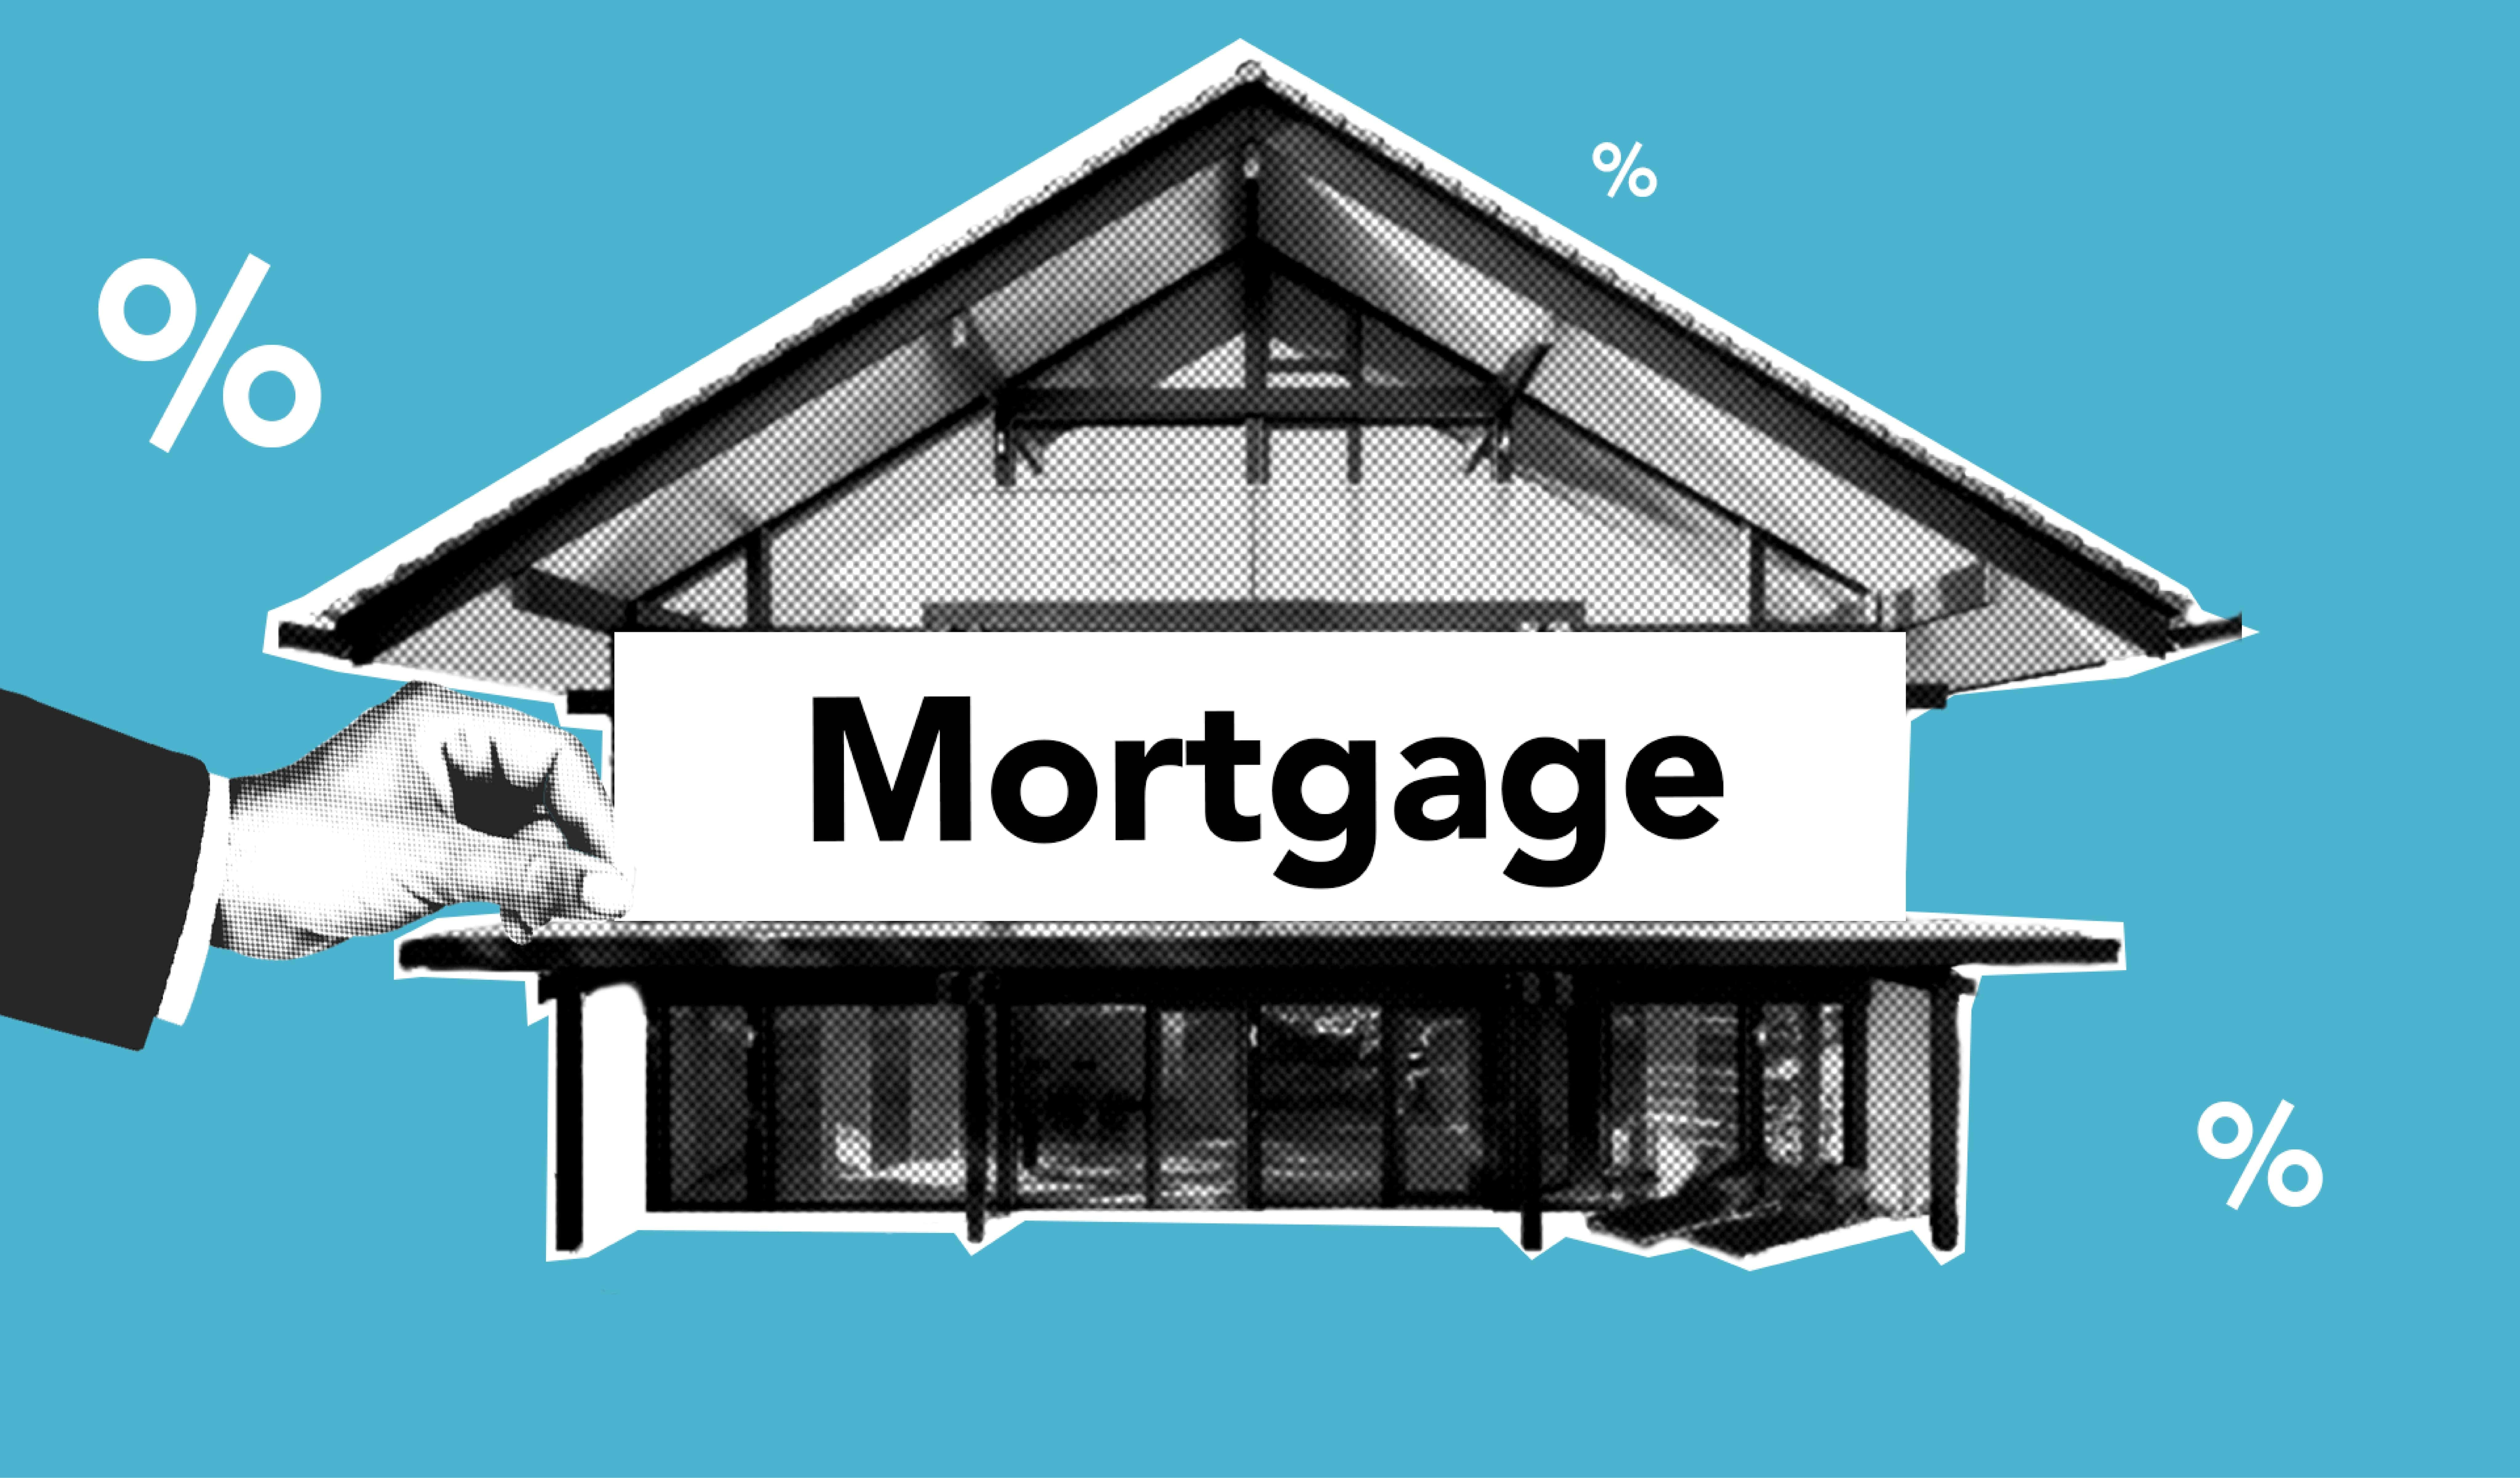 mortgage as a business owner mini guide